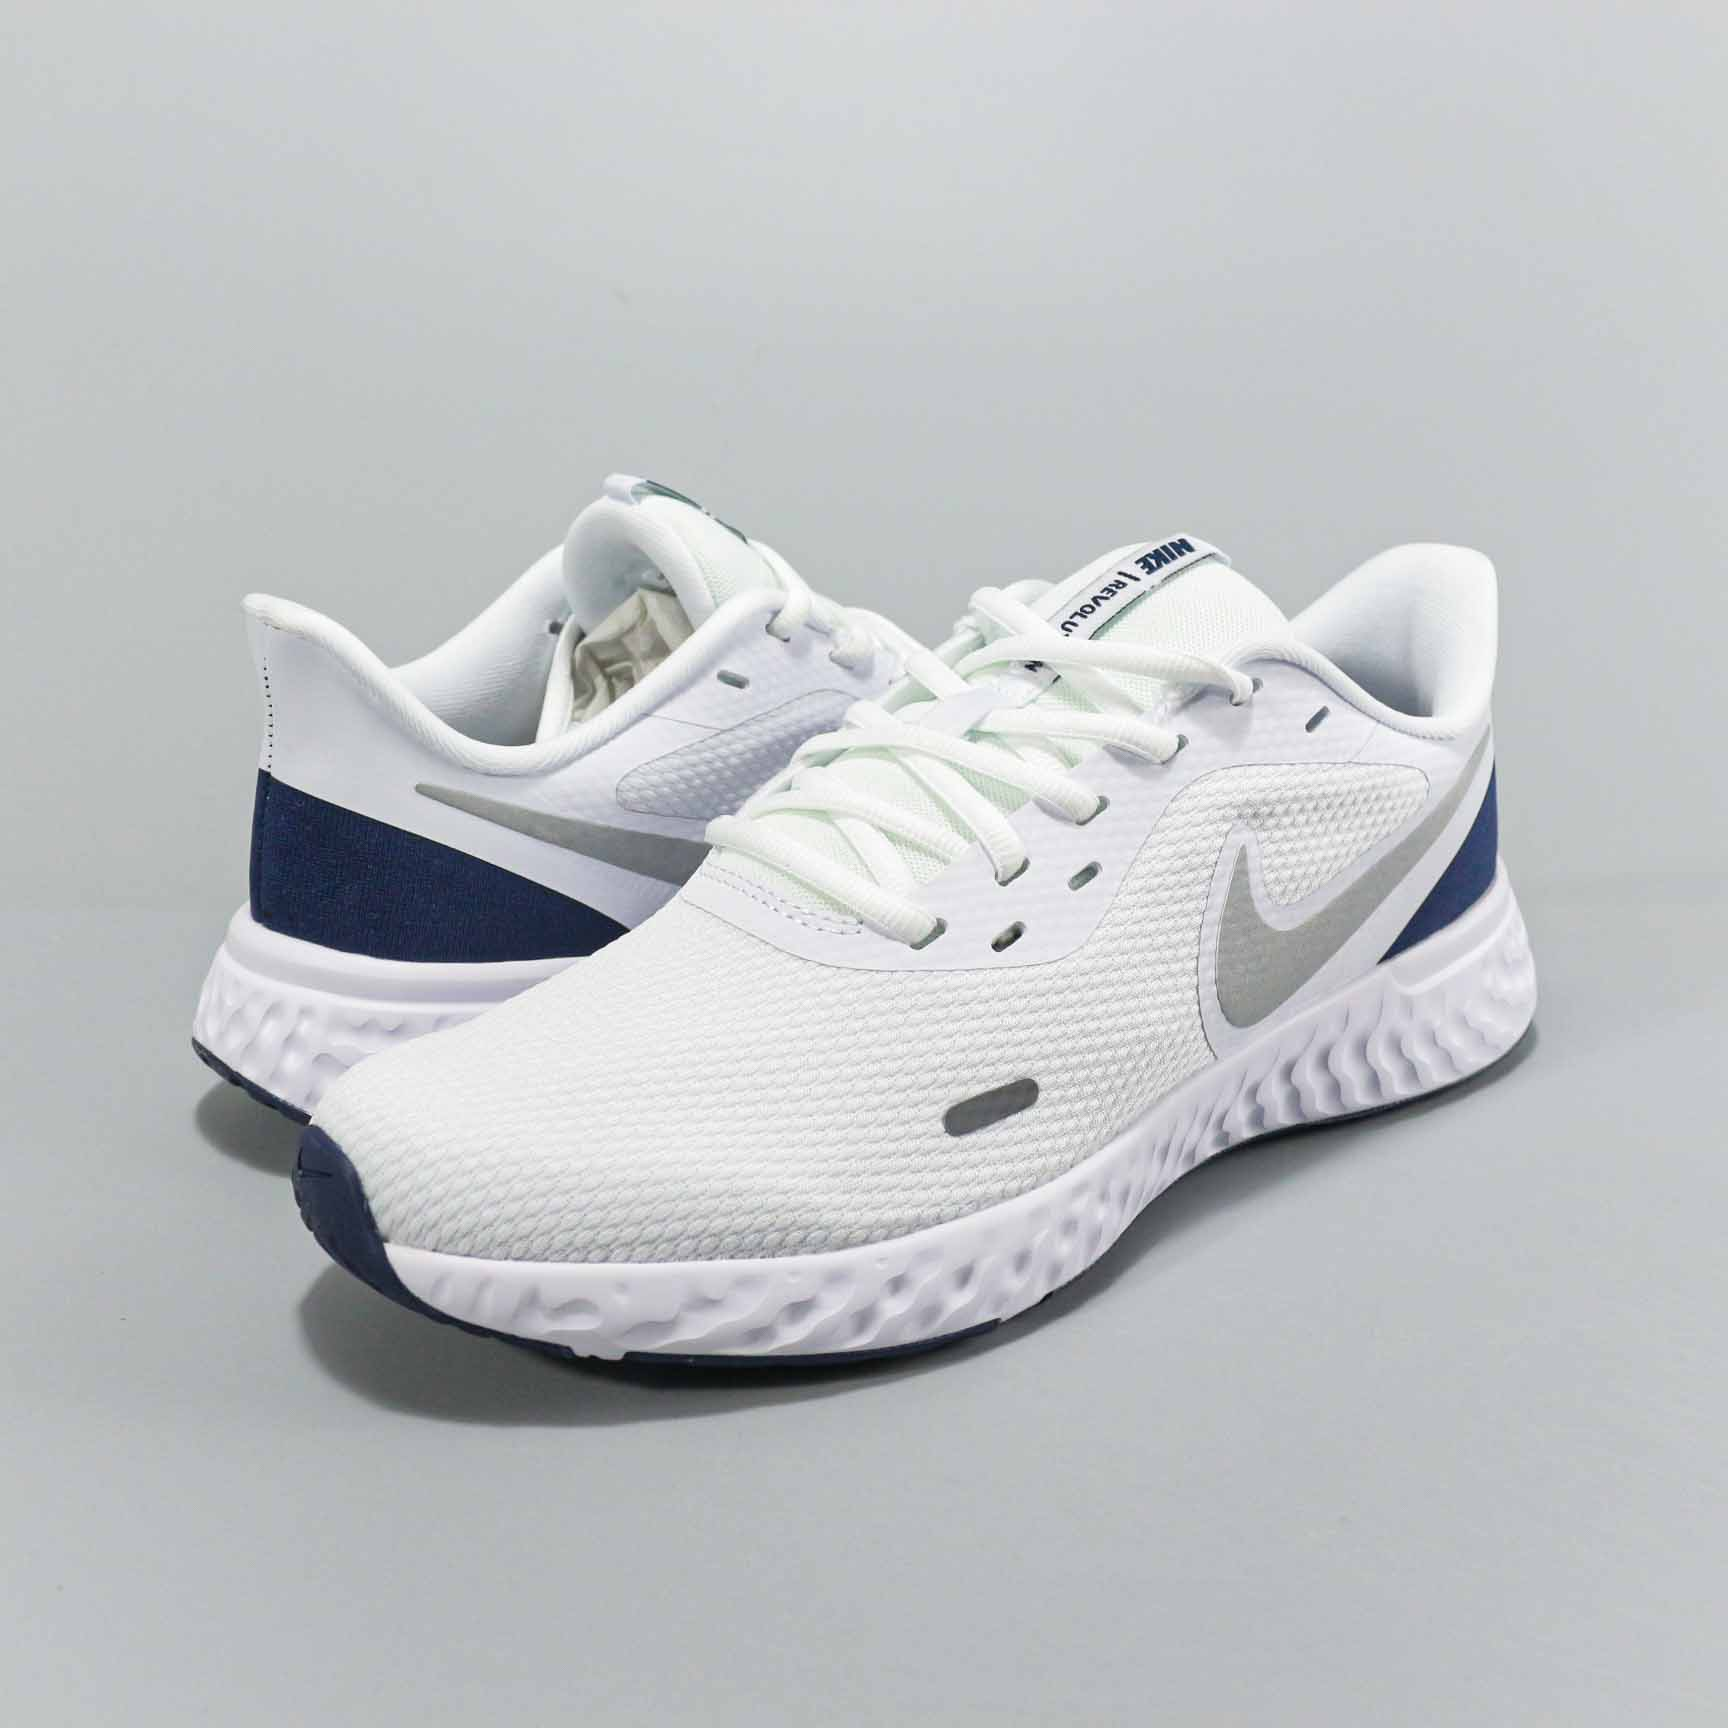 Nike Revolution 5 White Silver Blue Shoes